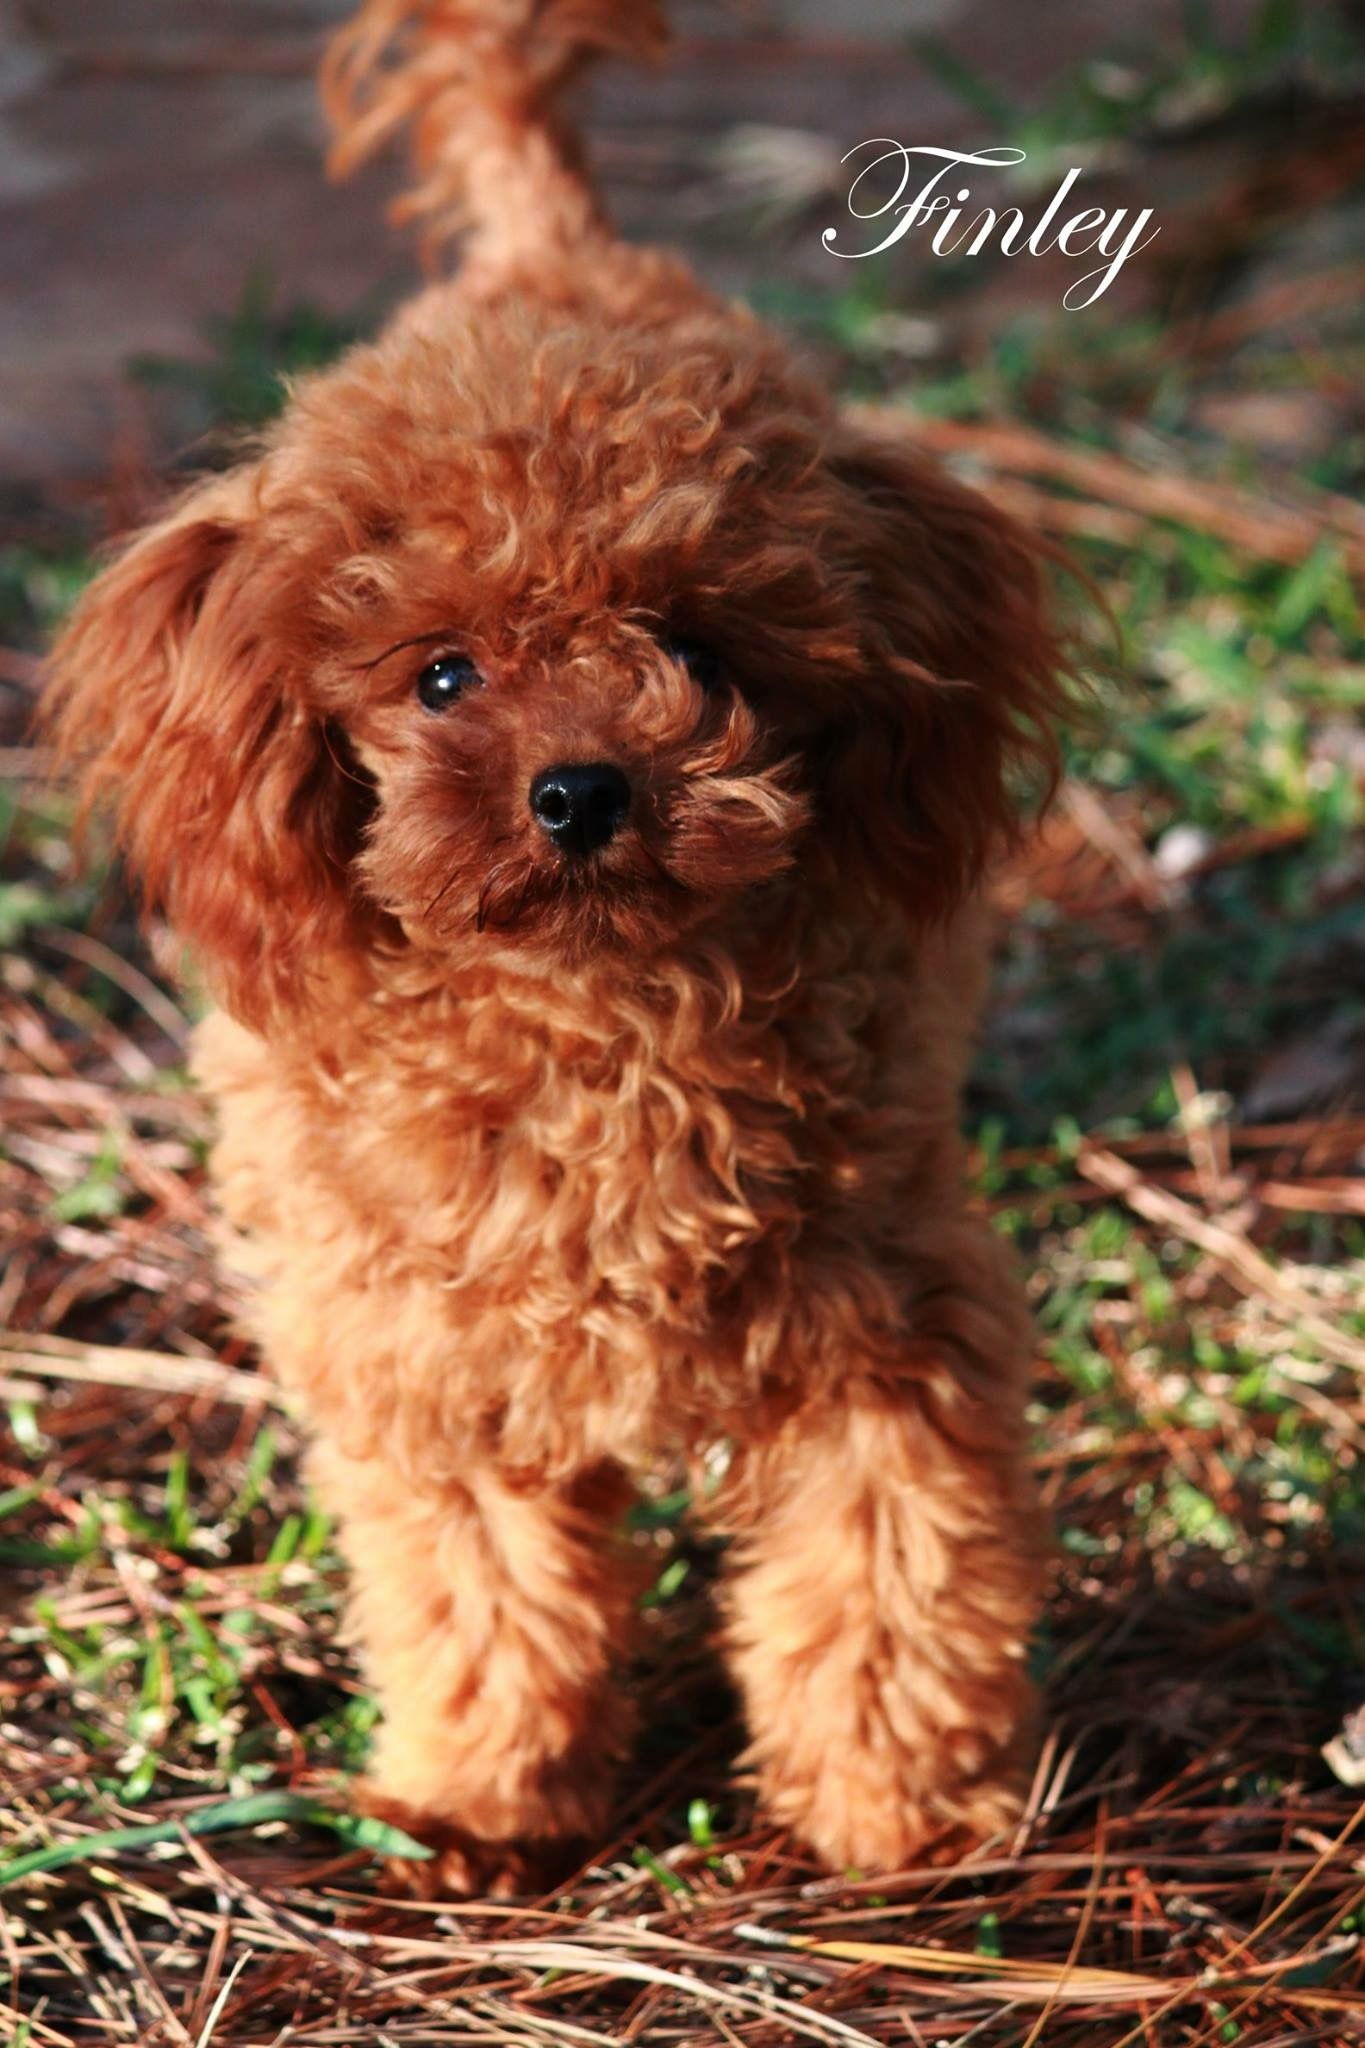 La Petite Poodles Of Texas Mr Finley With Images Cute